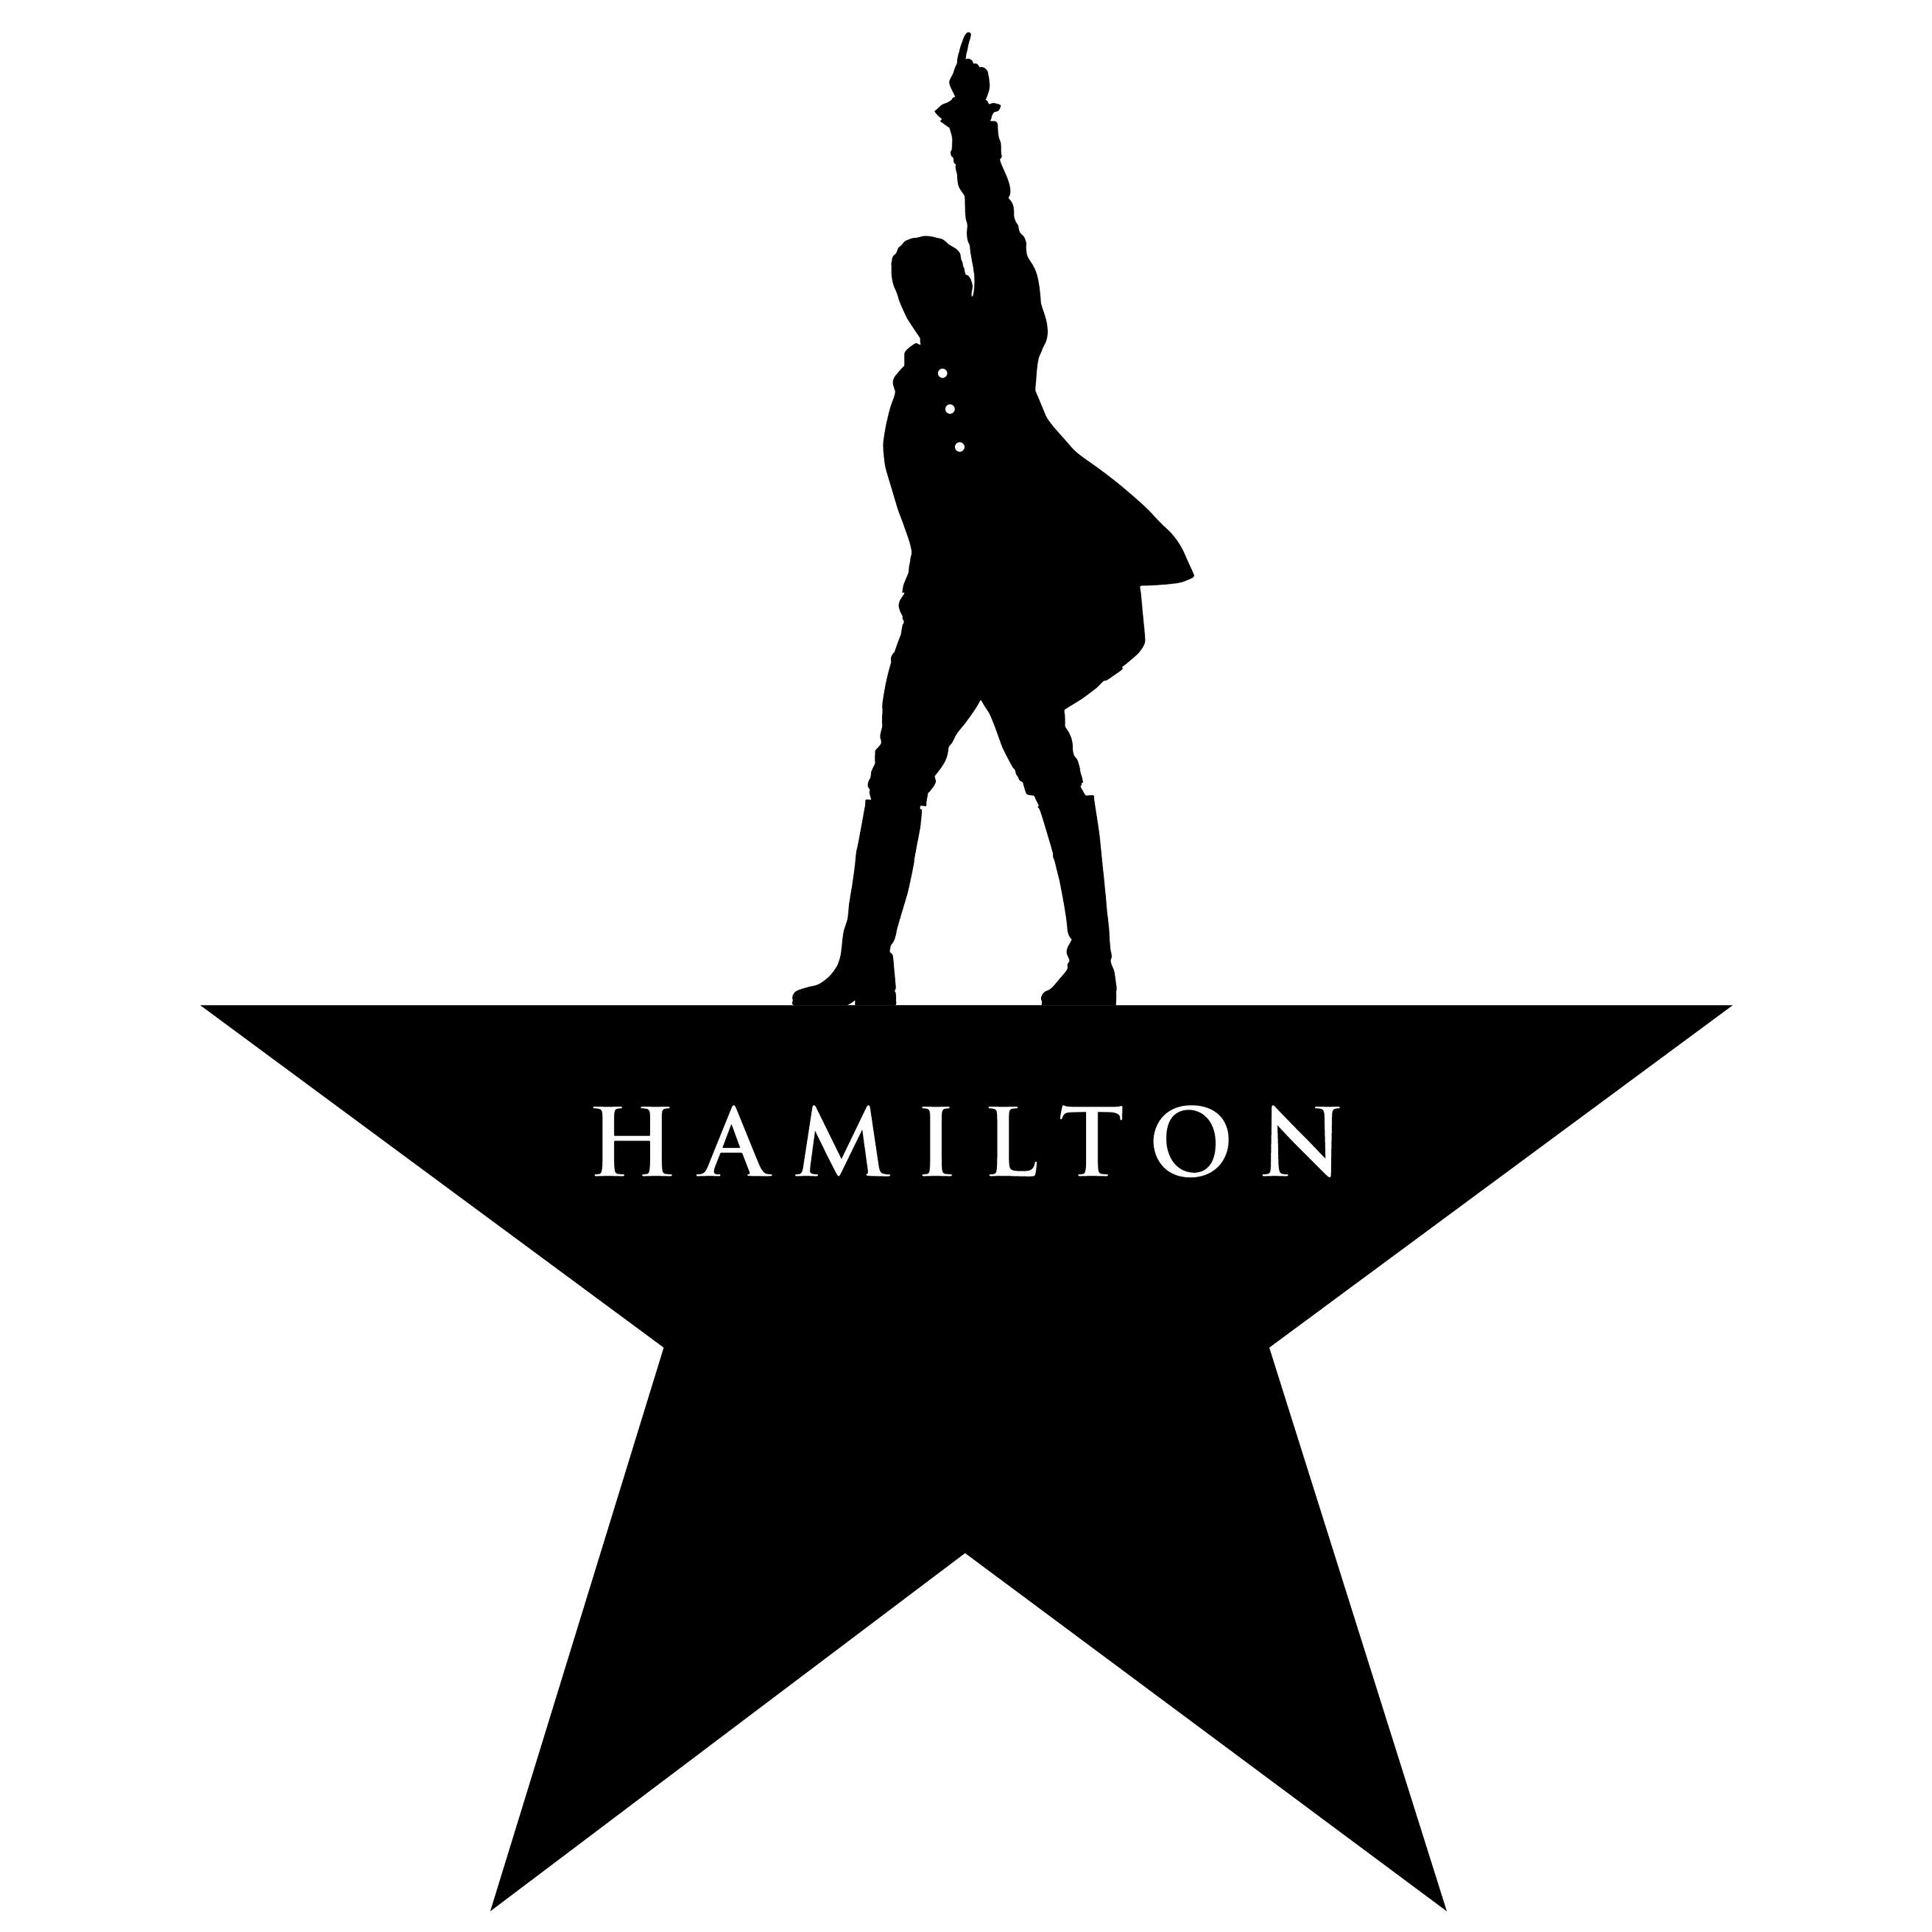 Tickets for 'Hamilton' at the Wharton Center go on sale this week